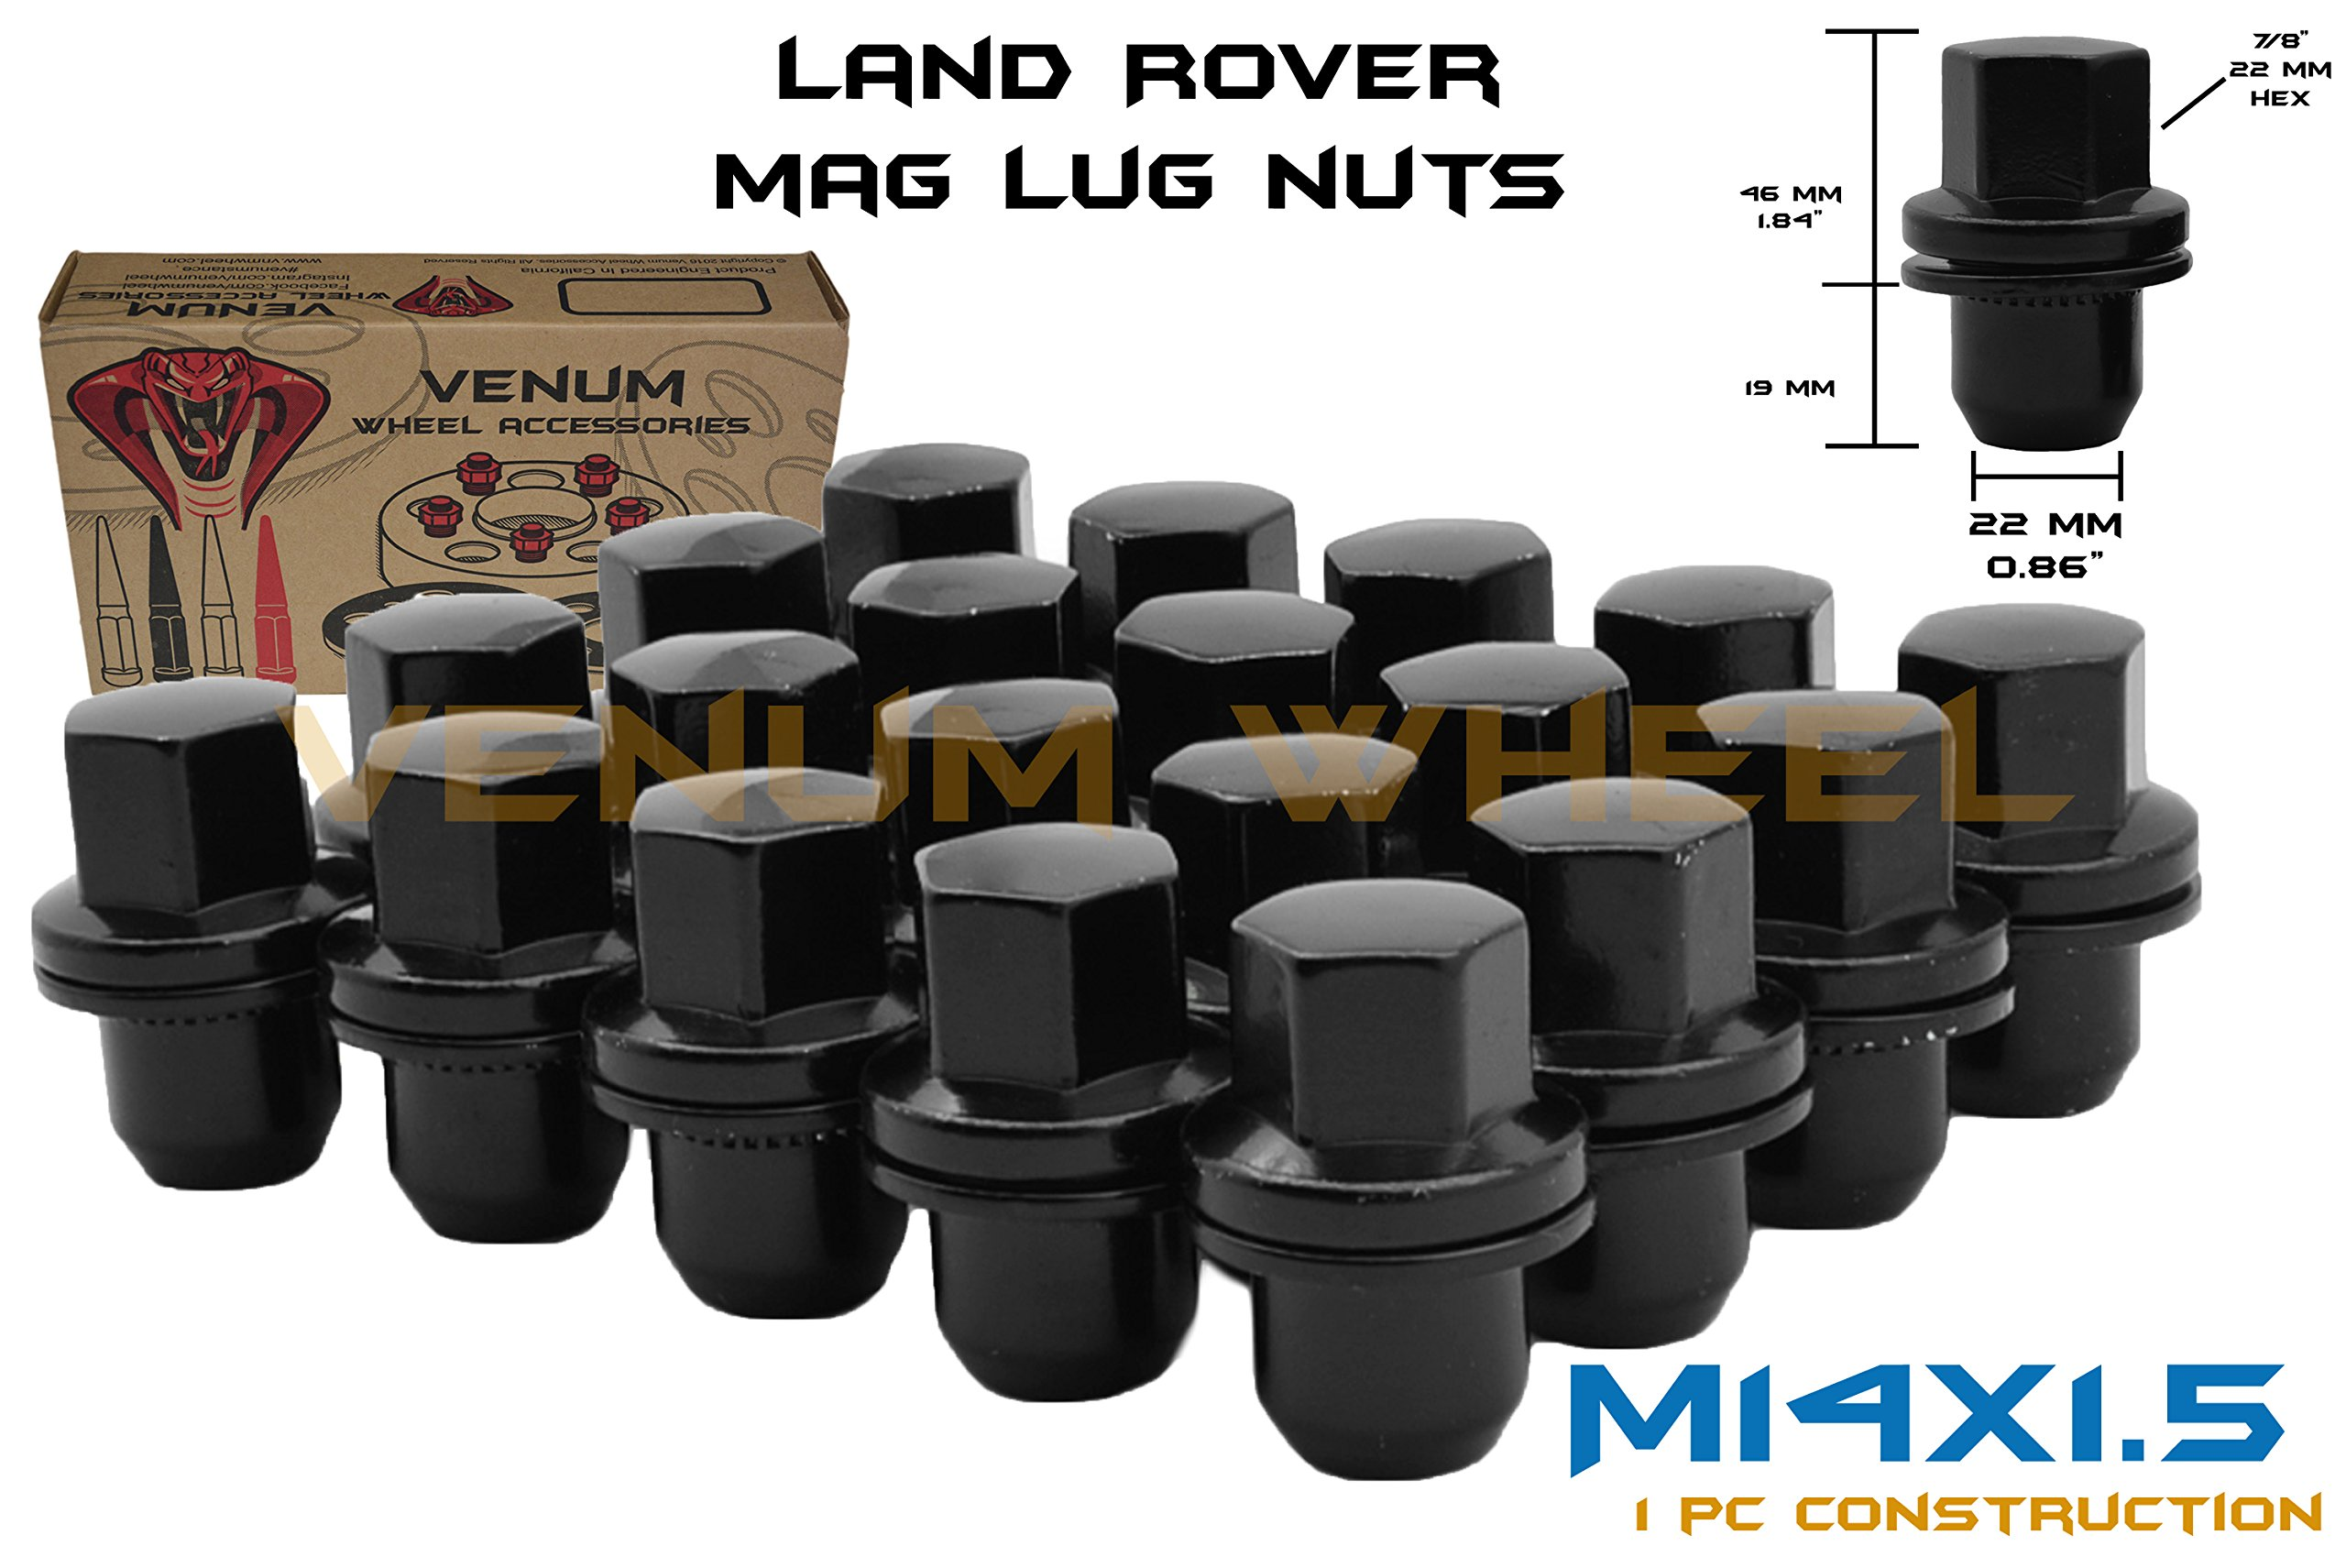 20 Pc Black OEM Factory Land Rover Replacement Mag Lug Nuts M14x1.5 Fits 2006 2007 2008 2009 2010 2011 2012 2013 2014 2015 2016 2017 Range Rover